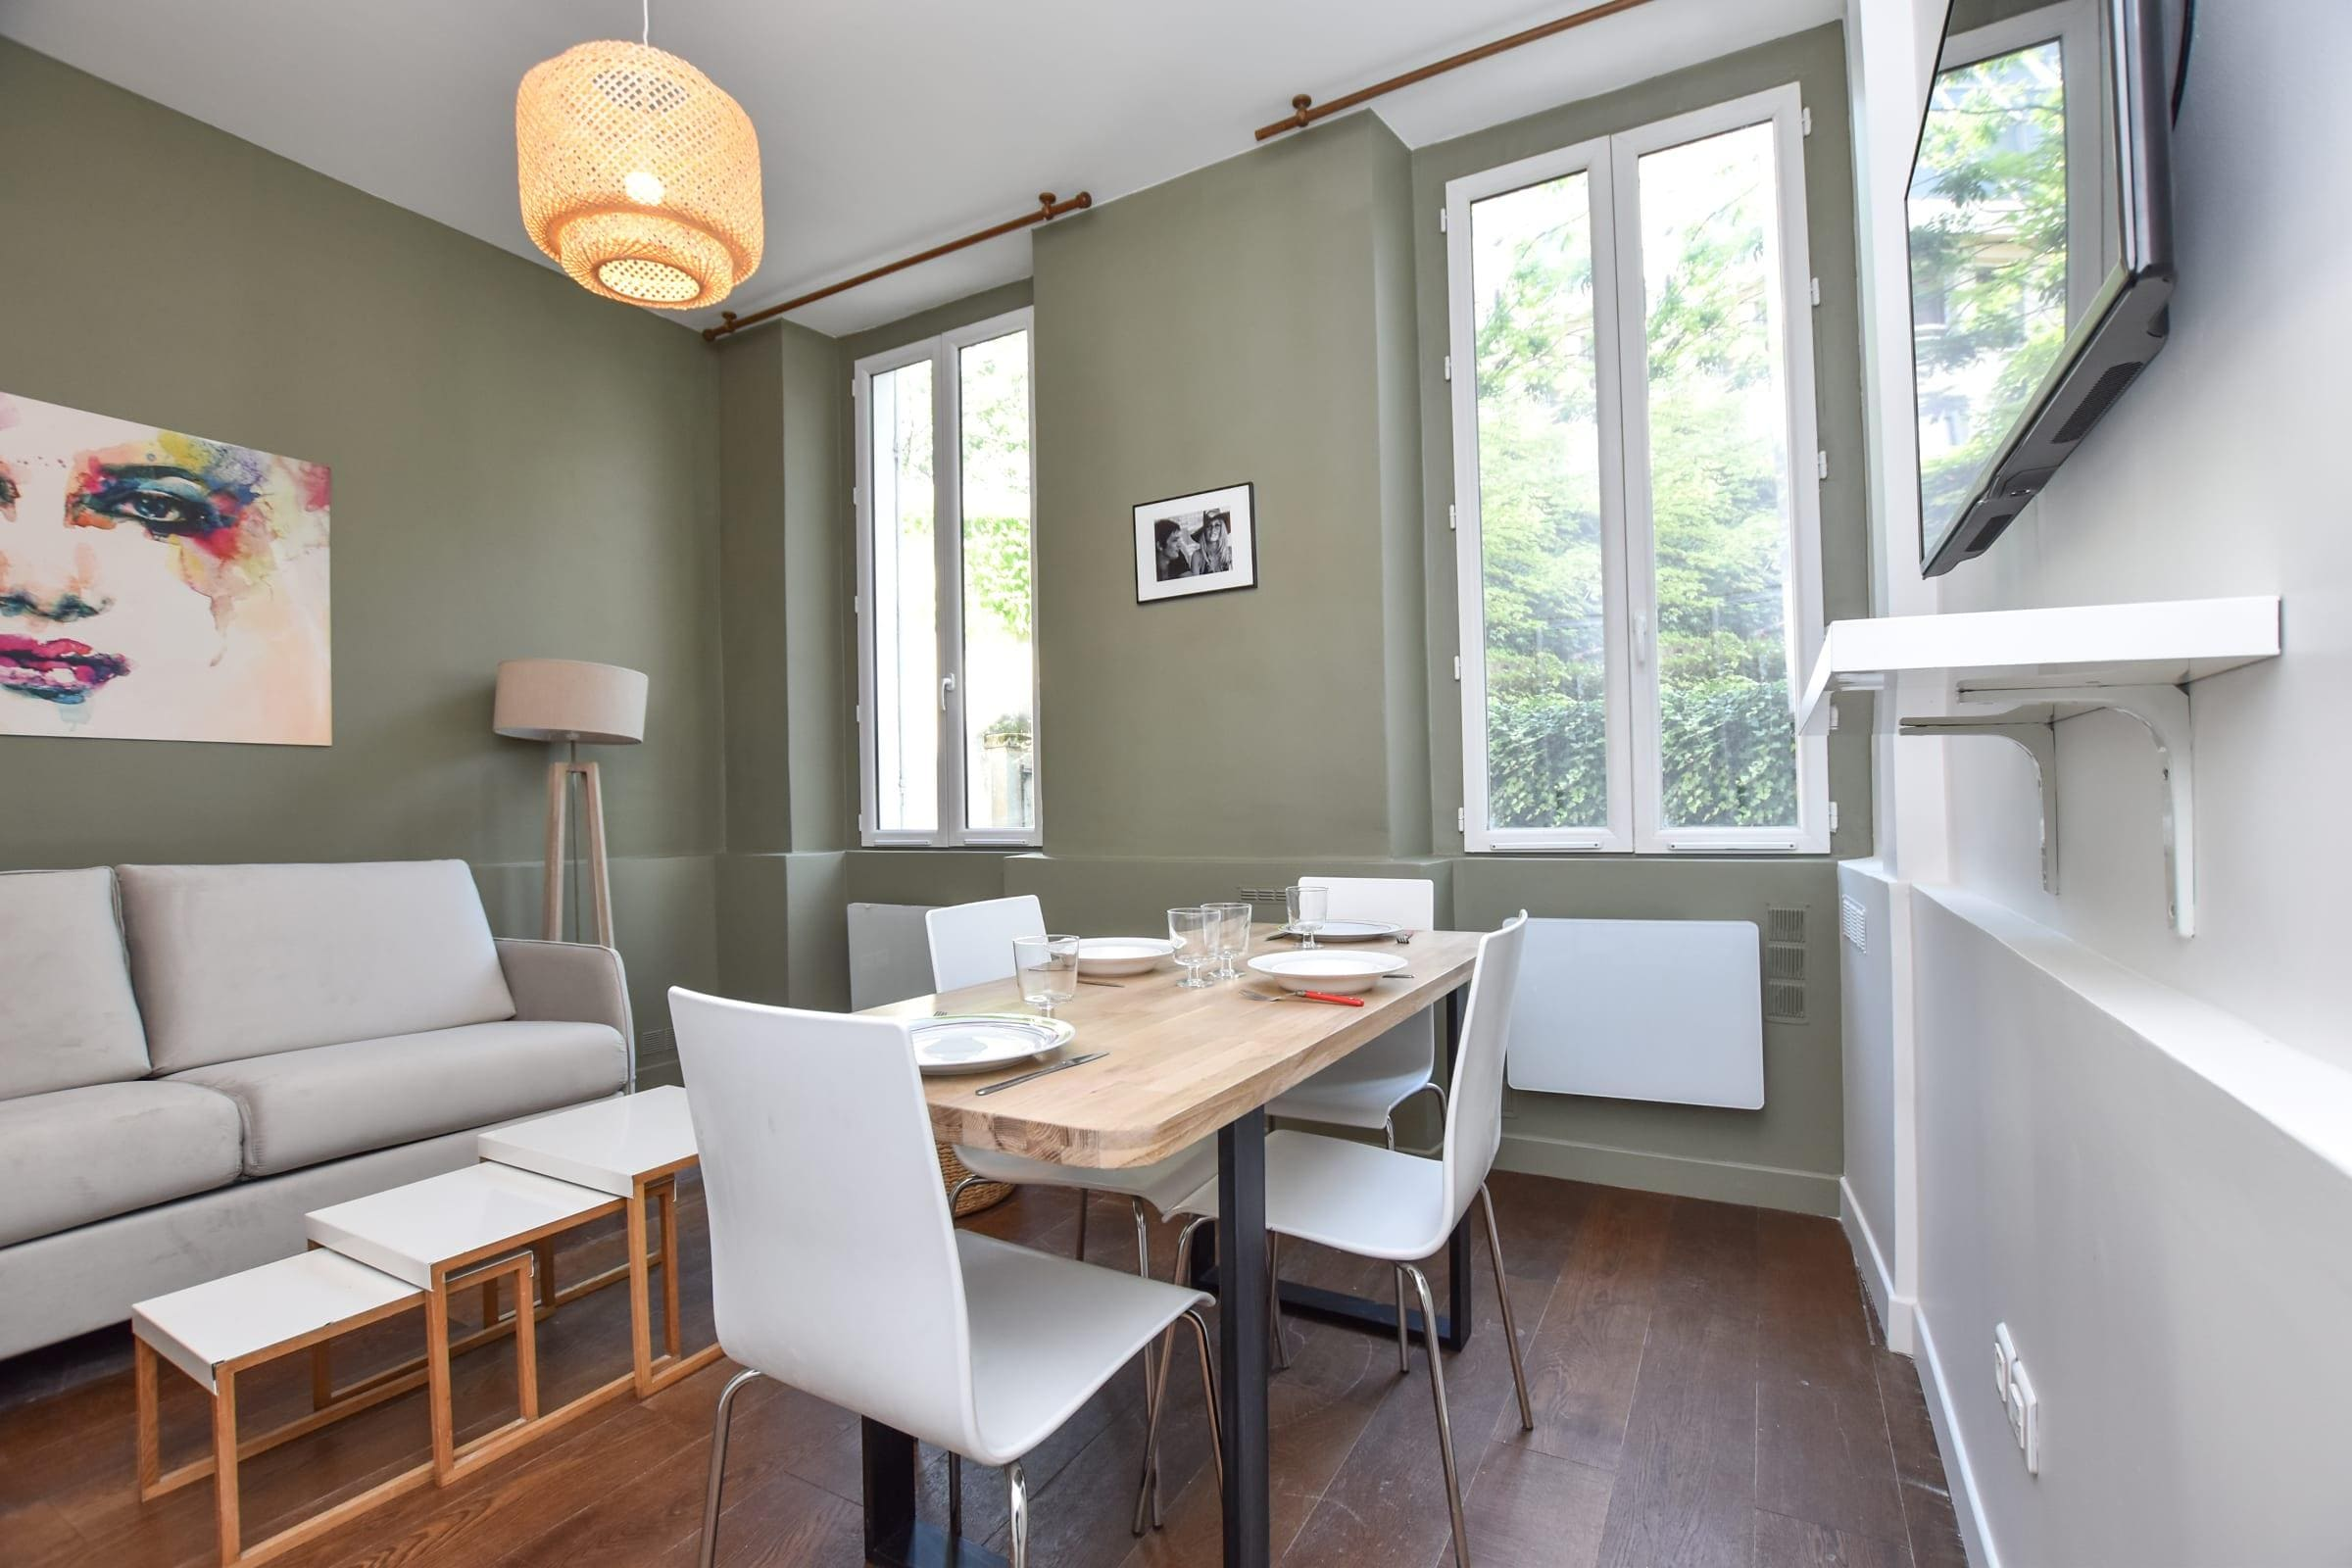 Property Image 2 - Stylish and Comfy Apartment at Le Marais